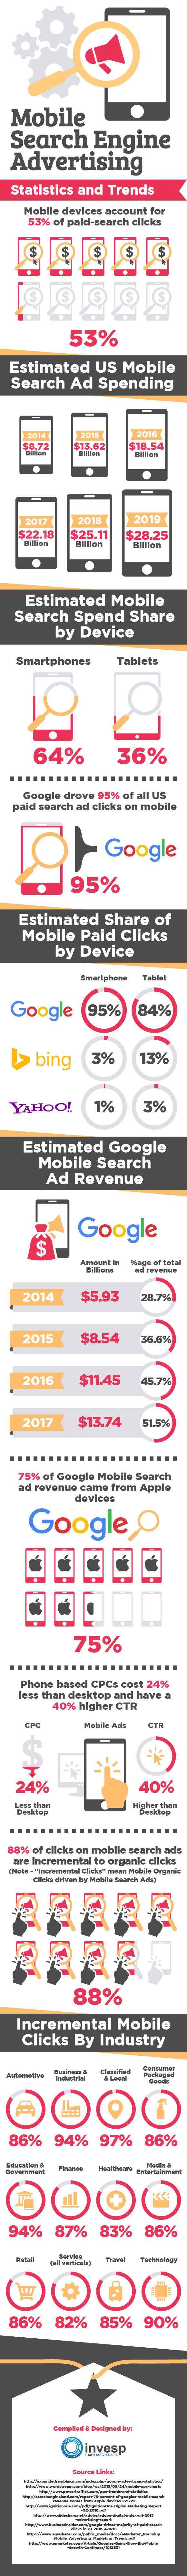 Mobile Advertising Statistics